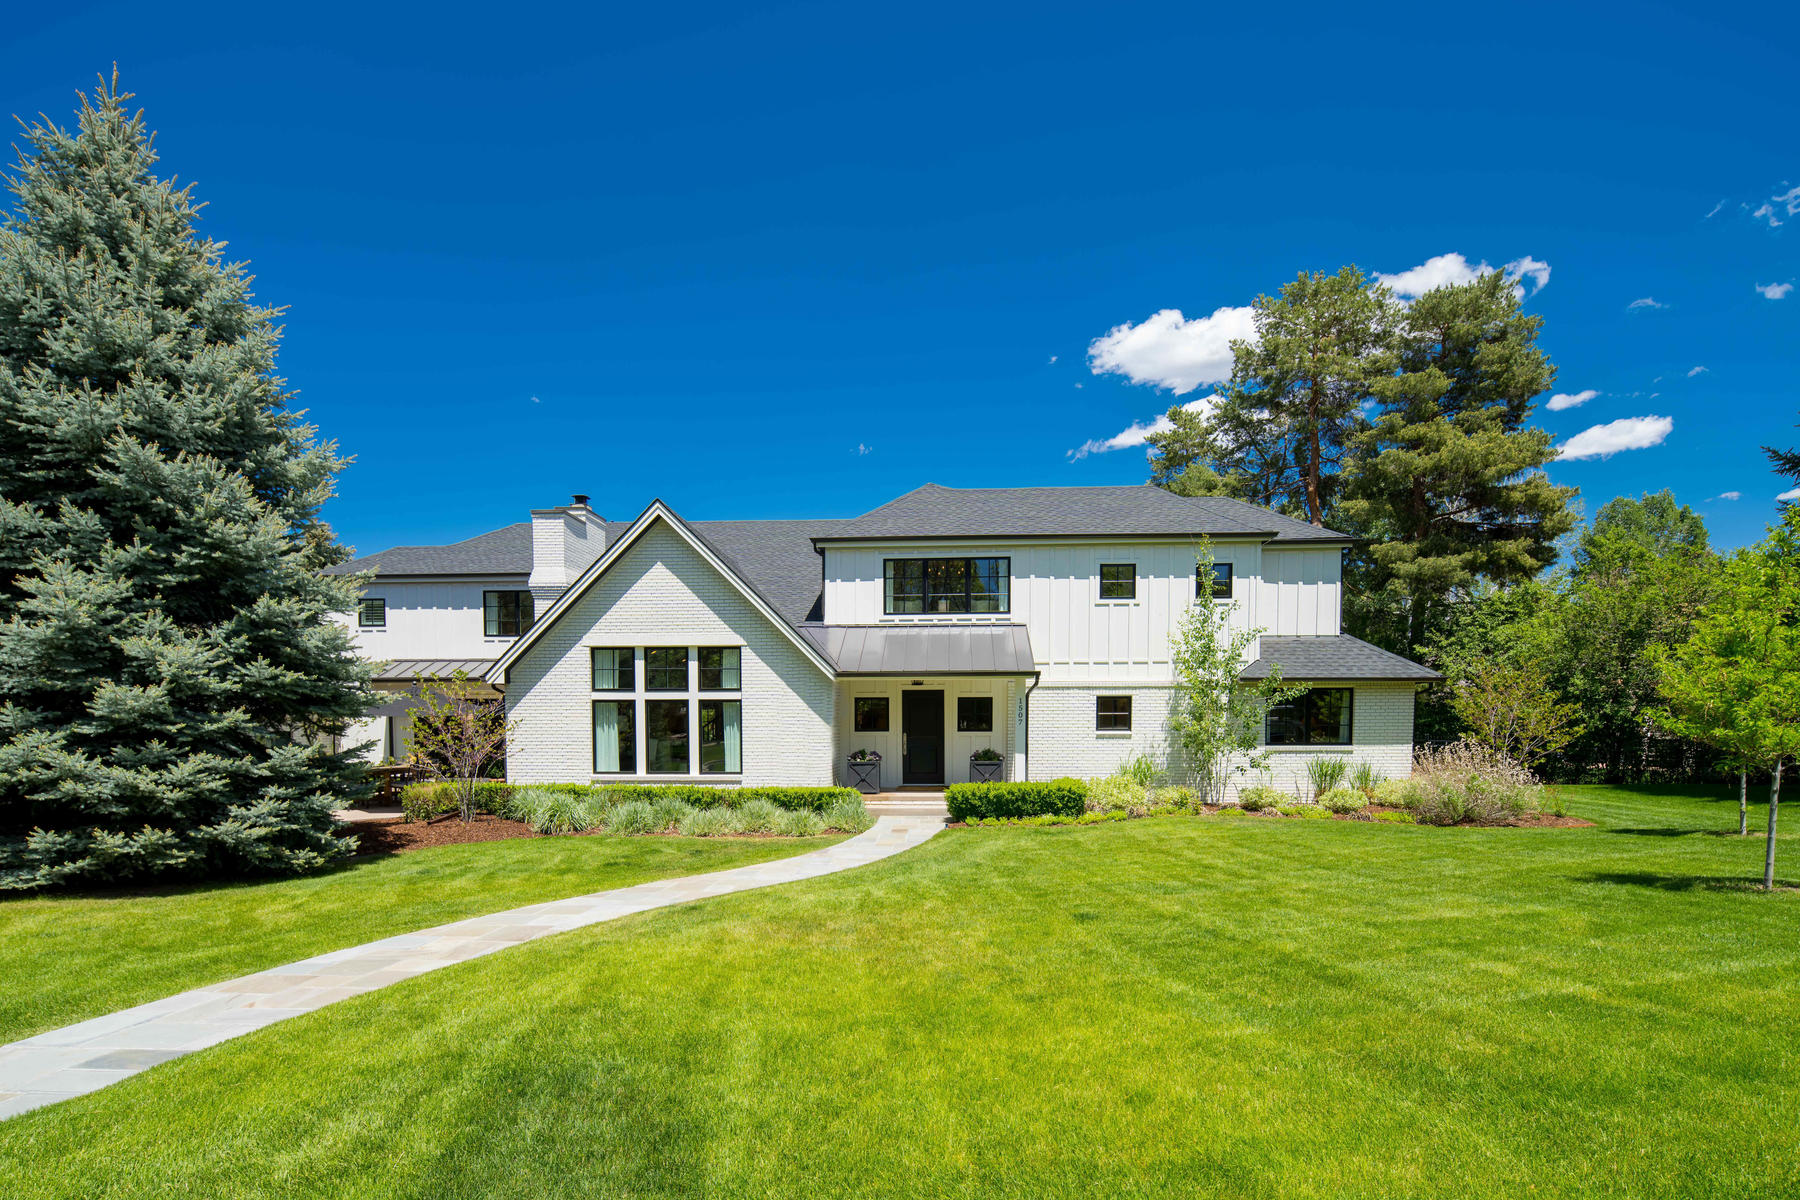 Single Family Homes for Sale at Classic Farmhouse in Greenwood Village 1507 Cottonwood Lane Greenwood Village, Colorado 80121 United States